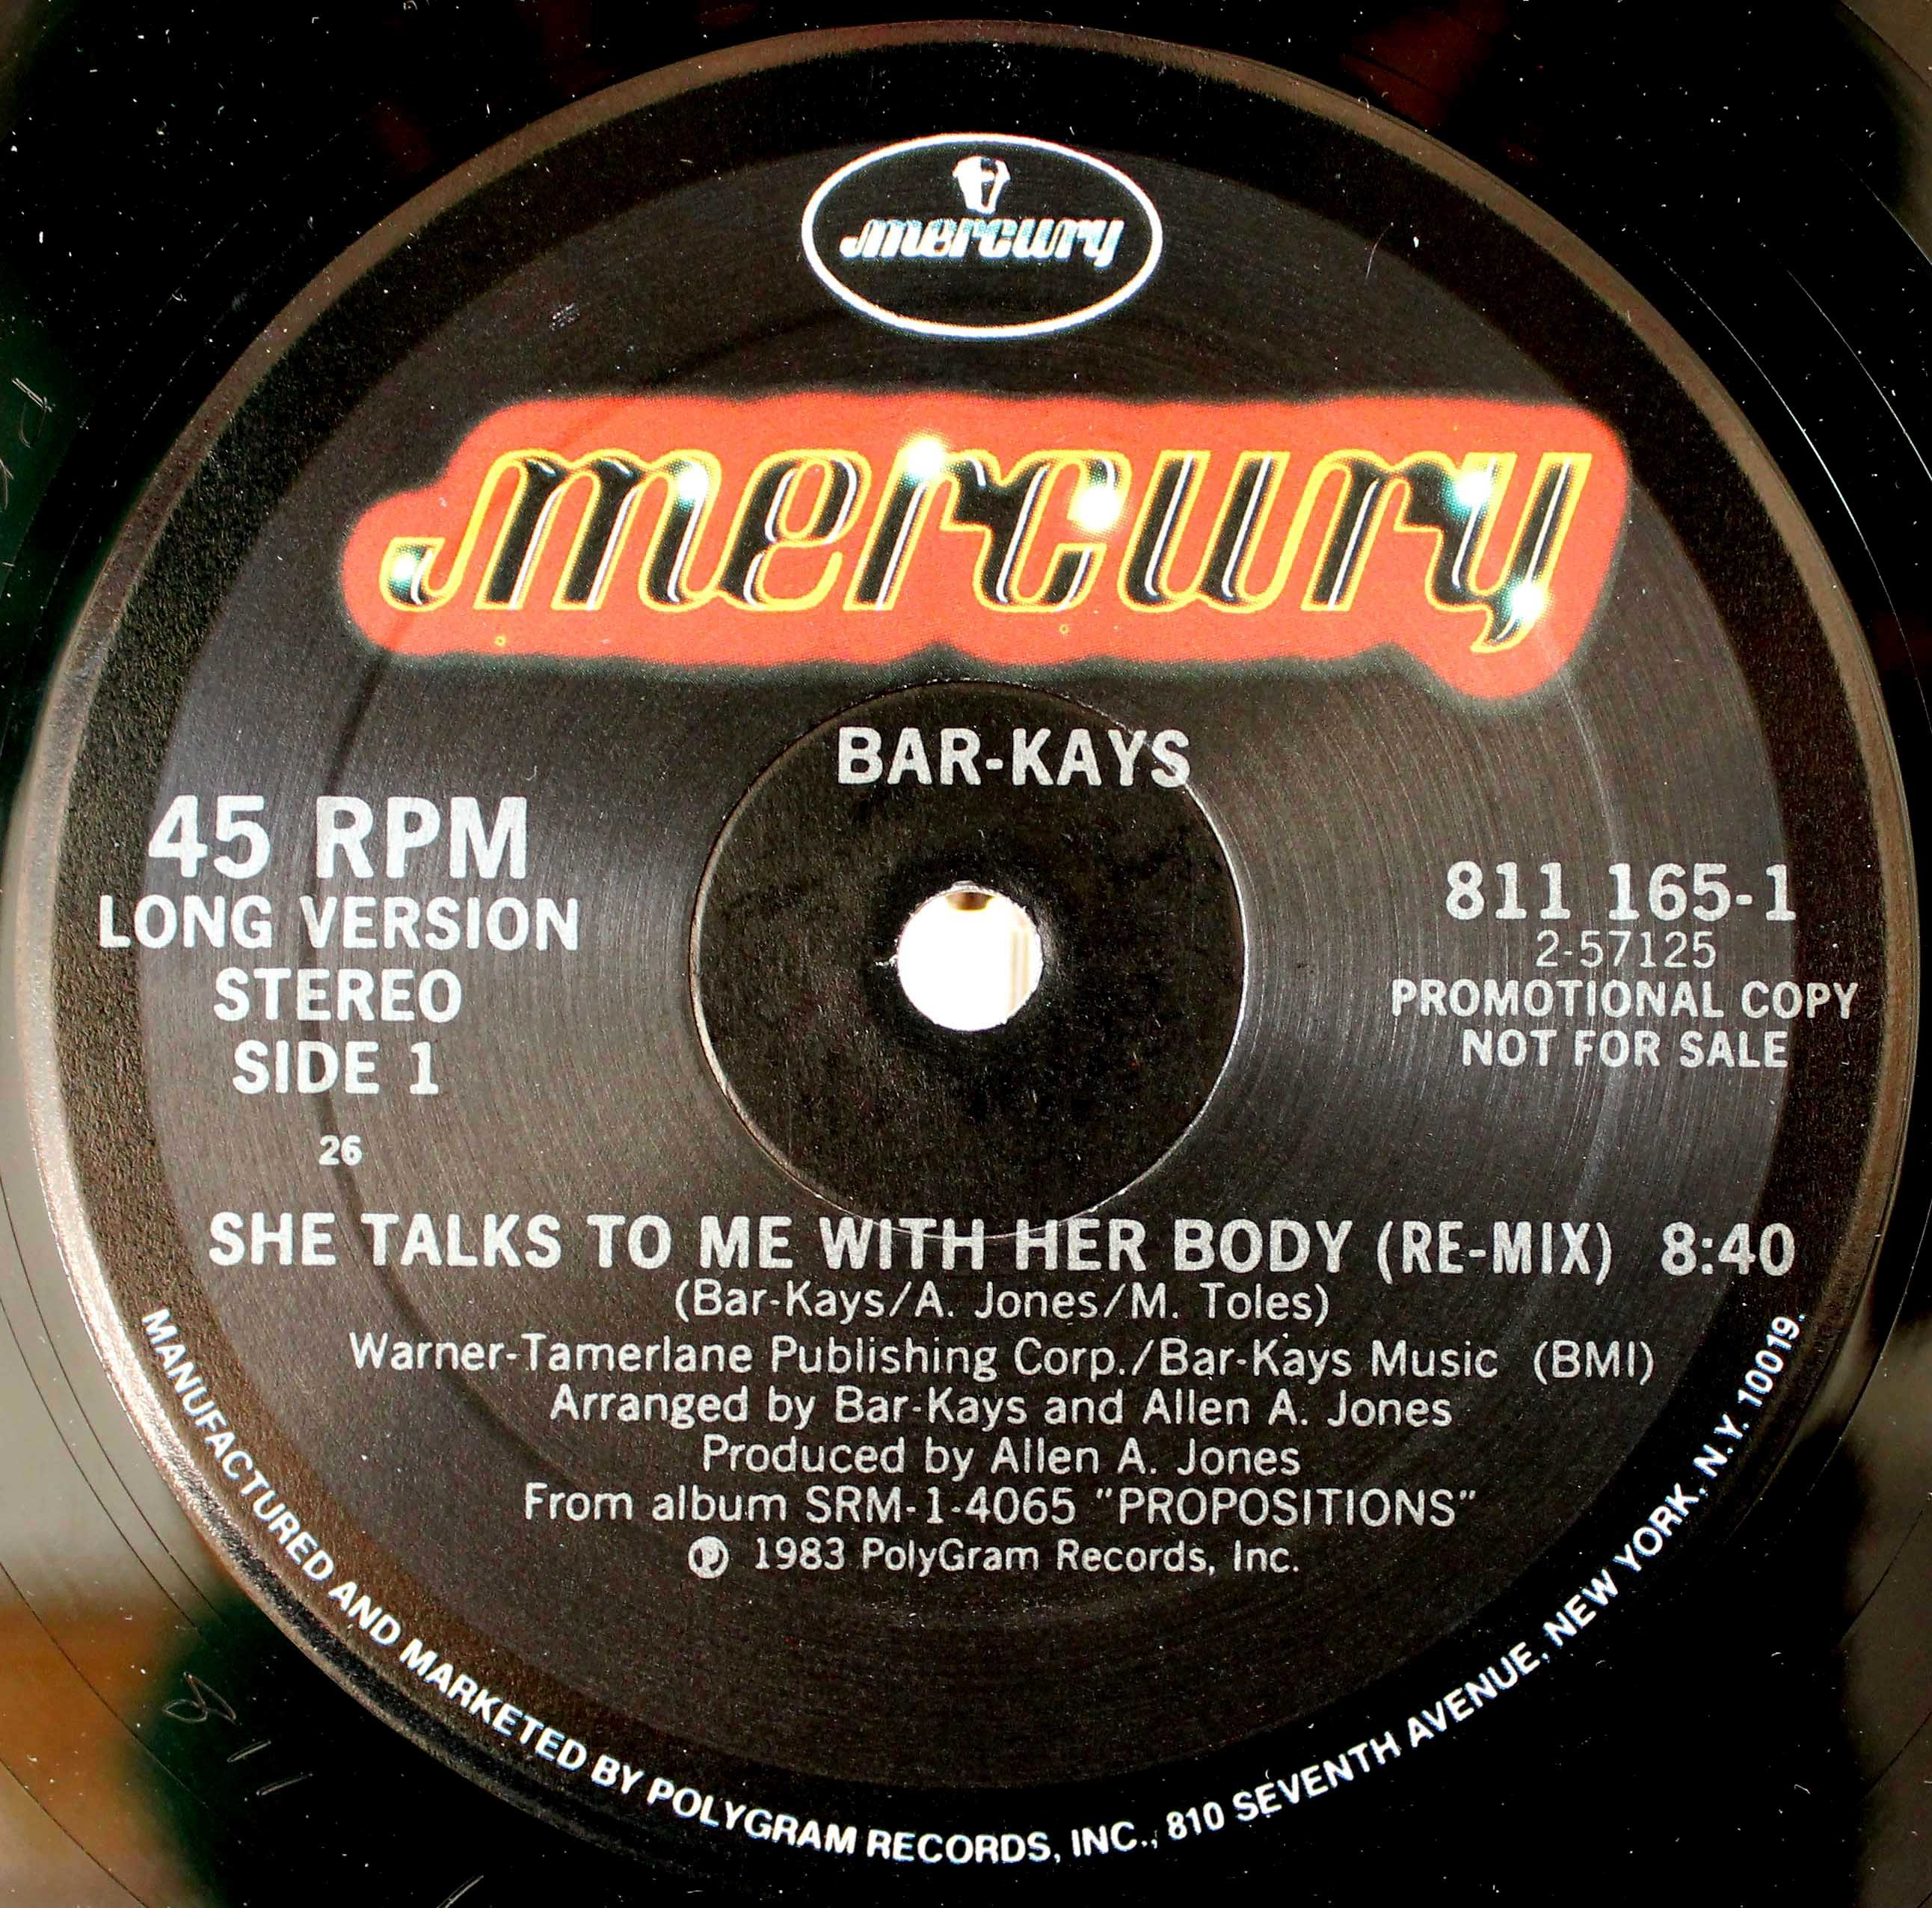 Bar-Kays - She Talks To Me With Her Body 03